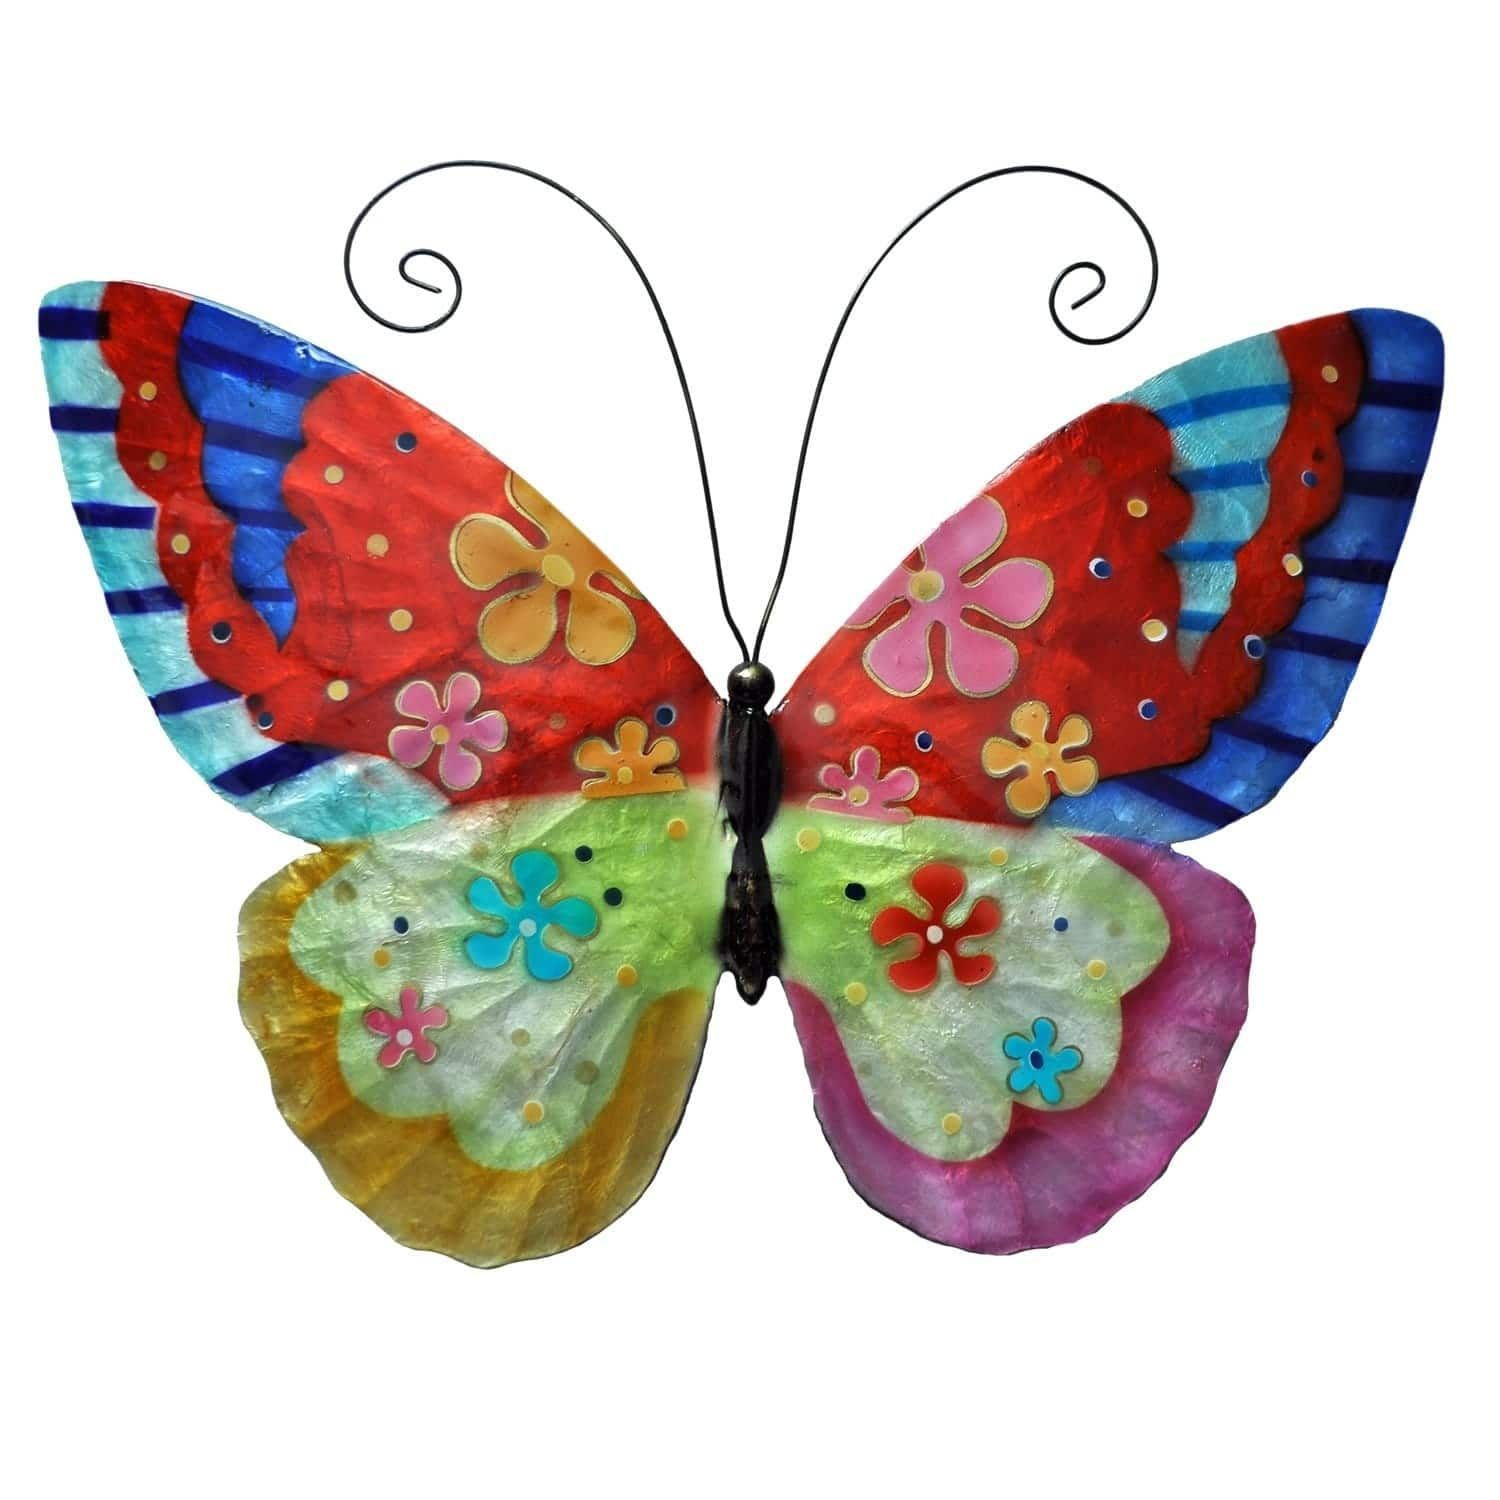 Eangee handpainted multicolored metal grey and capiz butterfly